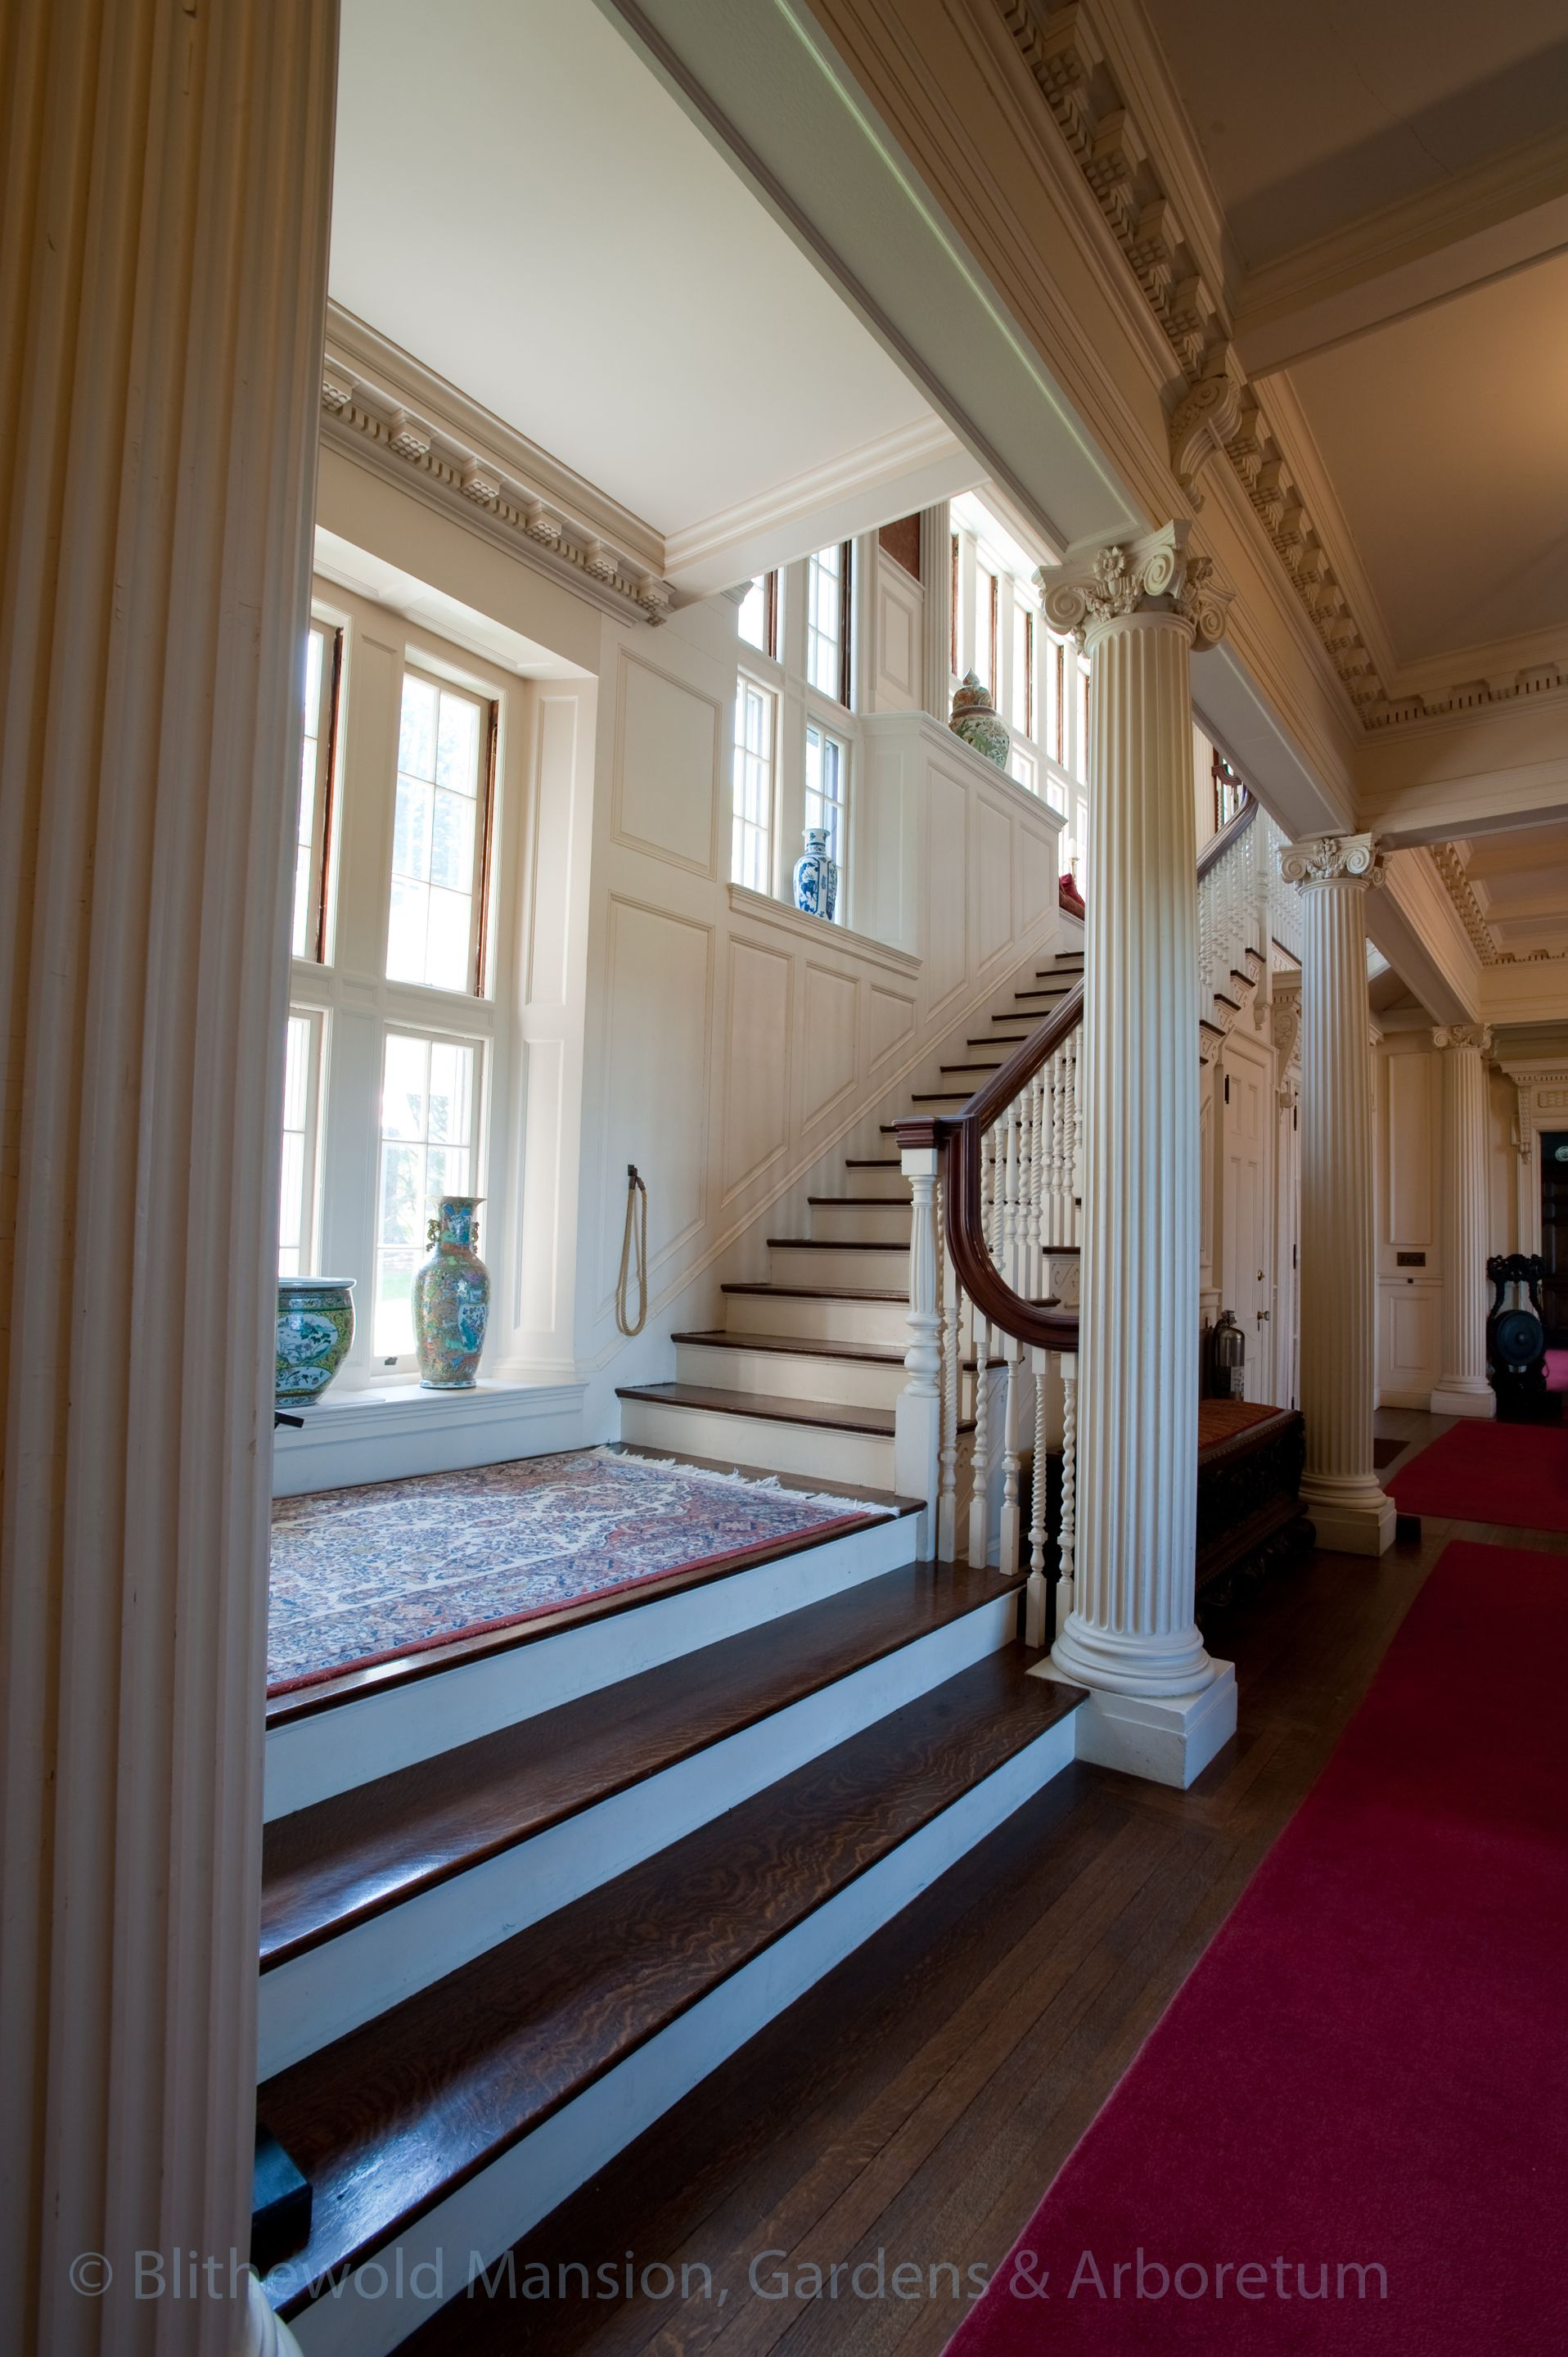 Best The Main Staircase At Blithewold Leading To Bedrooms And 400 x 300